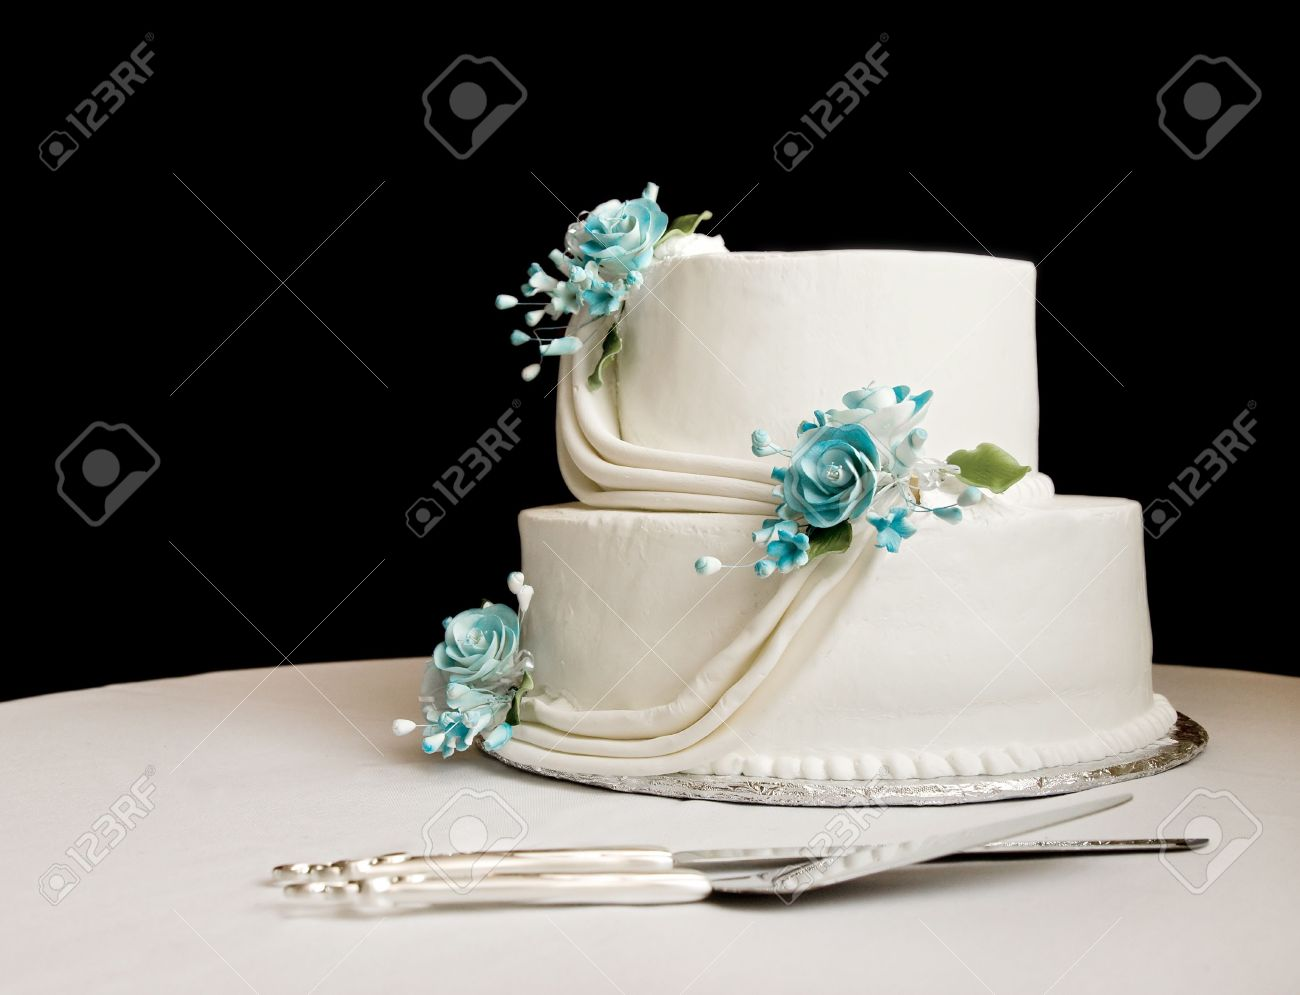 White wedding cake with blue flowers on a table with a black stock stock photo white wedding cake with blue flowers on a table with a black background izmirmasajfo Images